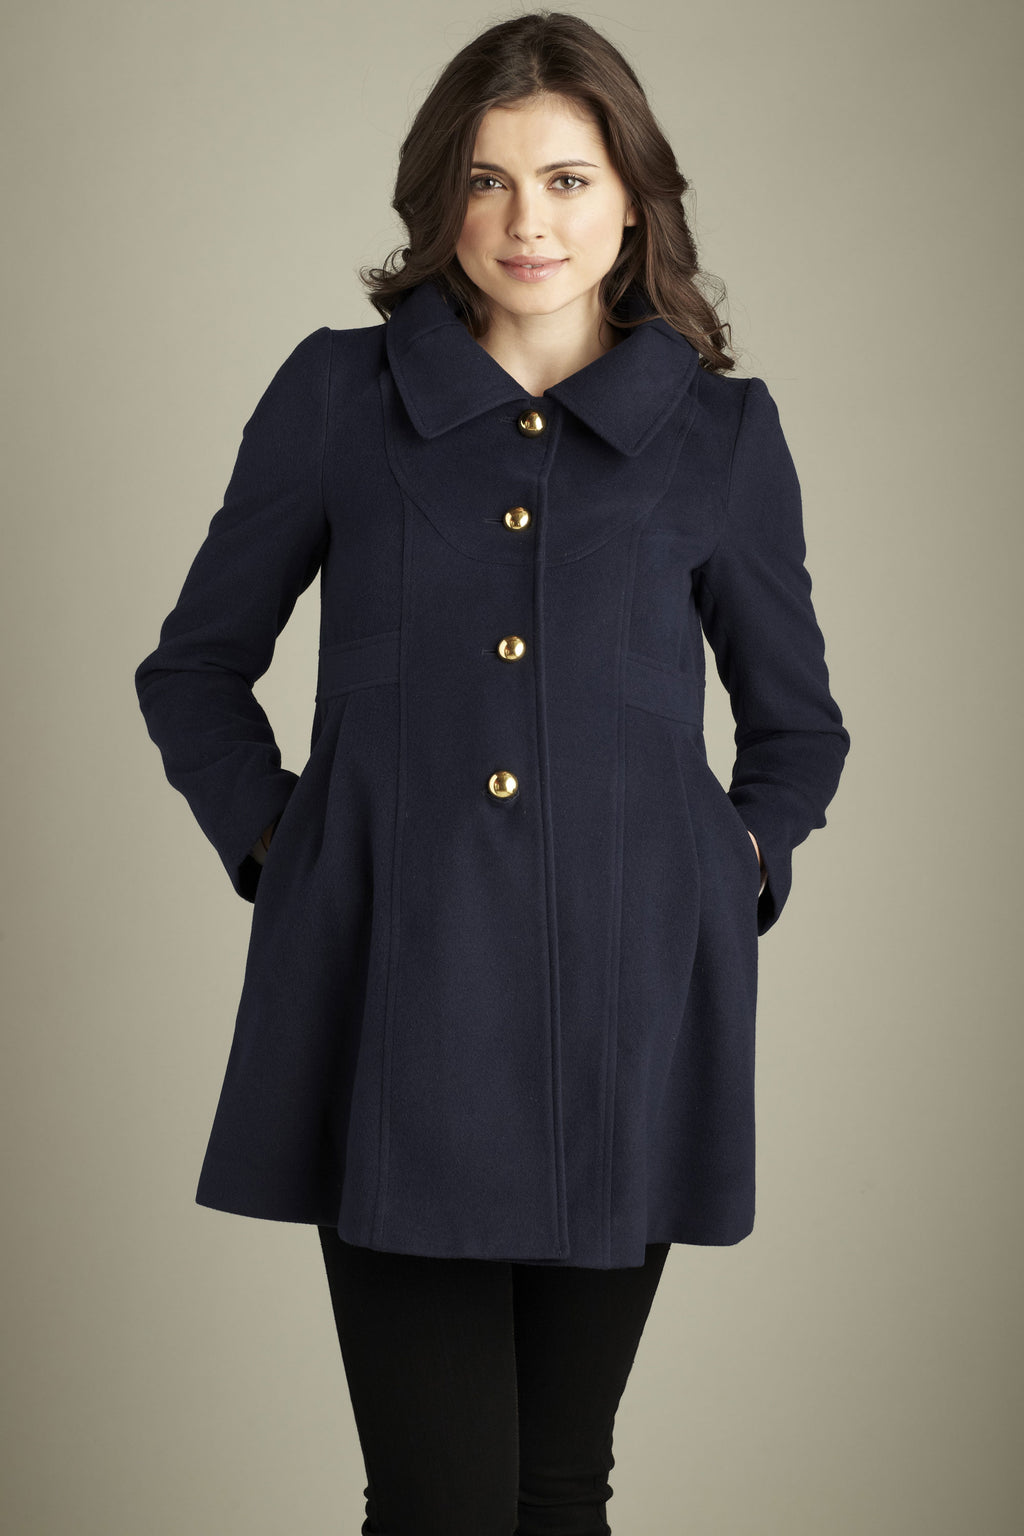 The Winter Pea Coat